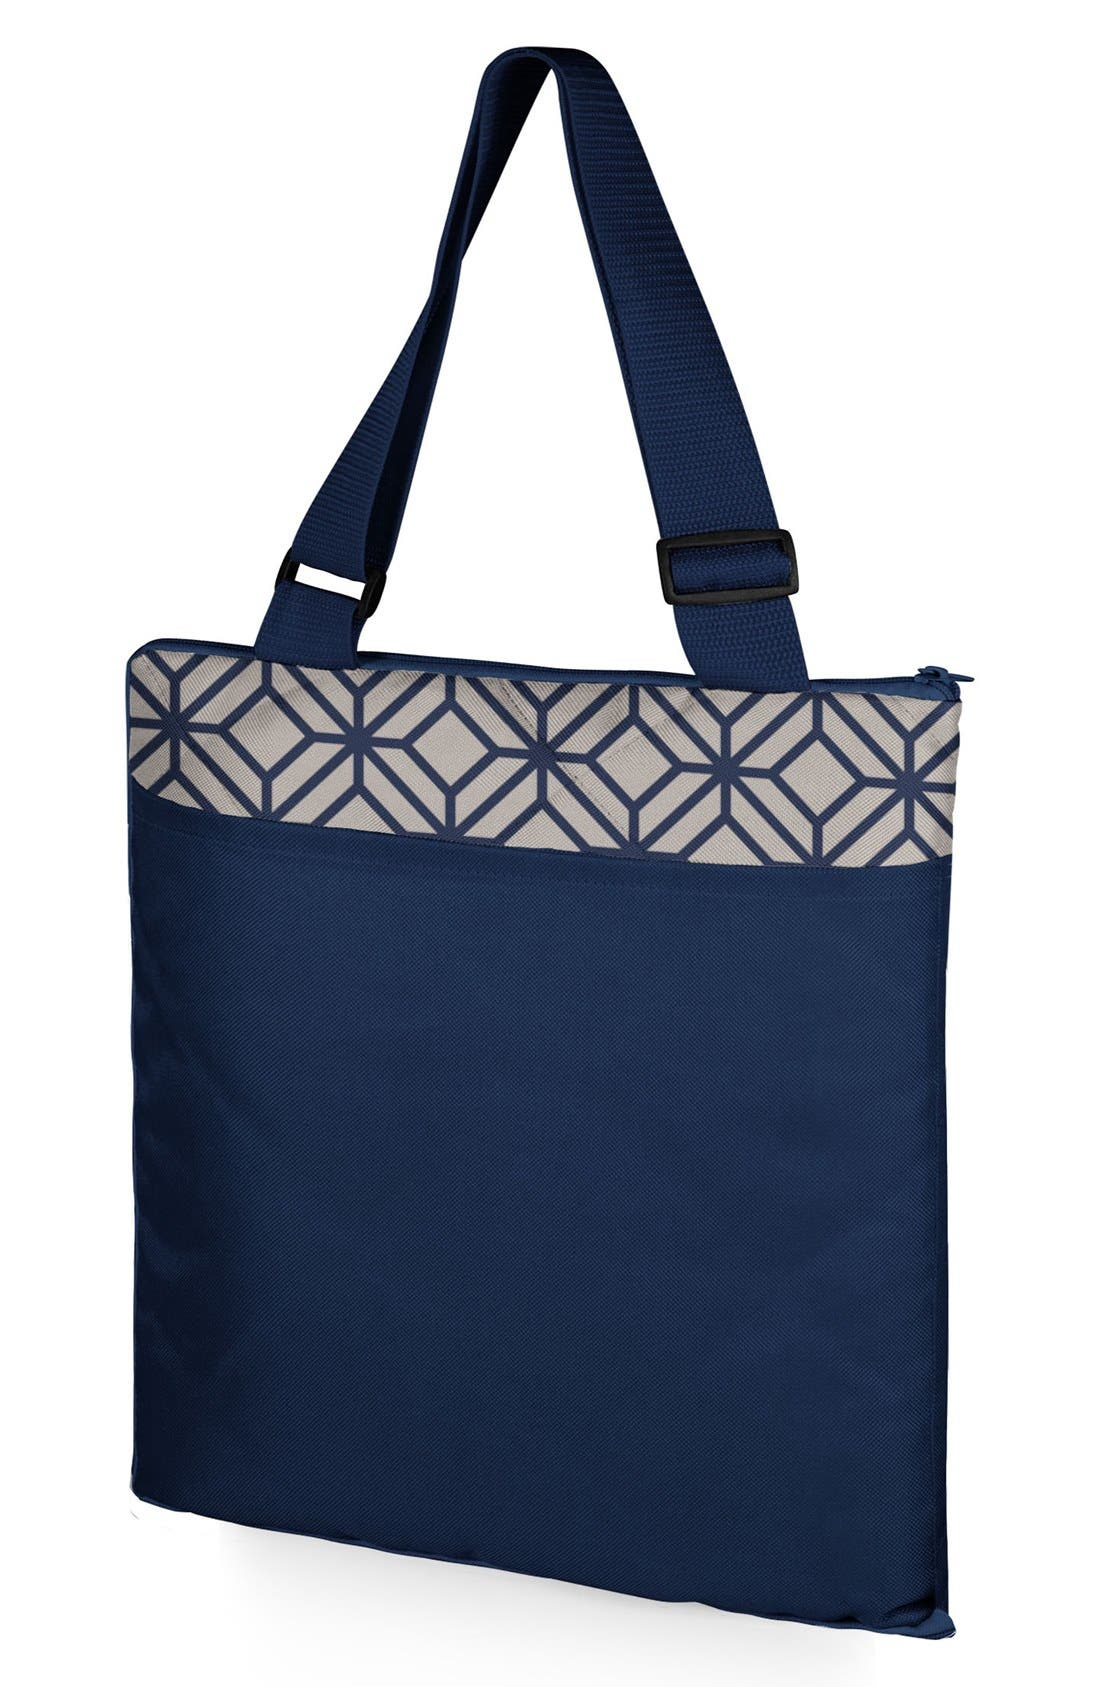 'Vista XL' Fold-Up Blanket Tote,                             Alternate thumbnail 3, color,                             Blue